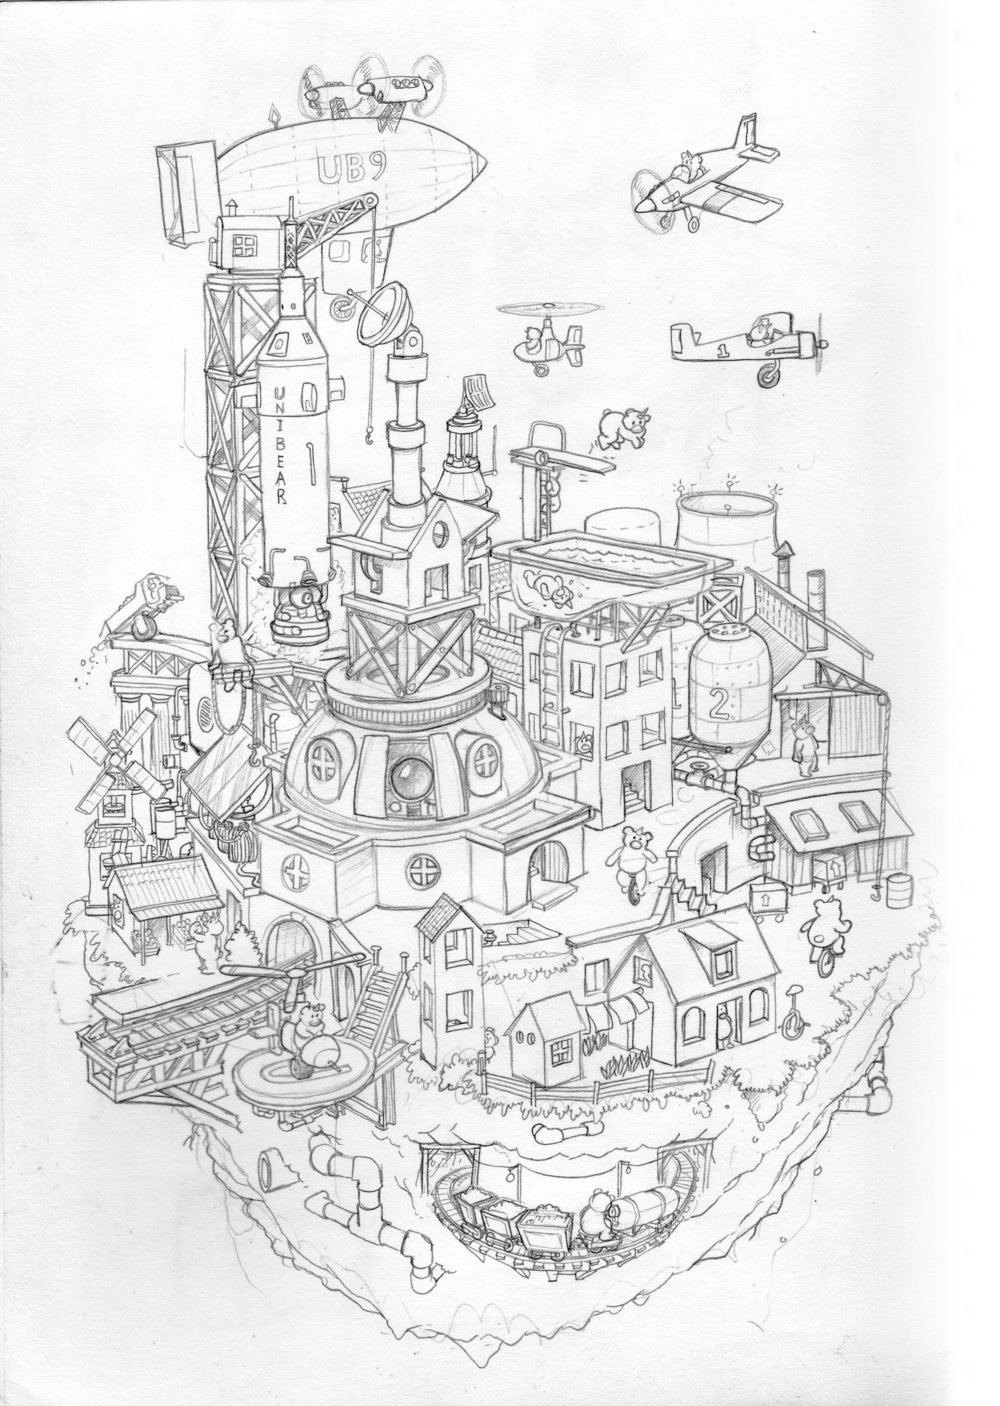 """My nephew always asks me to draw with him. Specifically, he wanted to draw a city. OK! There was a time I was about his age when I would practically run home from school to watch  The Secret City , this great educational drawing show on the Buffalo PBS station. The host would draw all these great futuristic cities populated by one-horned bears called, appropriately, """"Unibears"""". I actually learned a lot about drawing from The Secret City. In my tribute to Commander Mark and his eradicator (eraser), we populated this city with Unibears too. My nephew loves this drawing."""